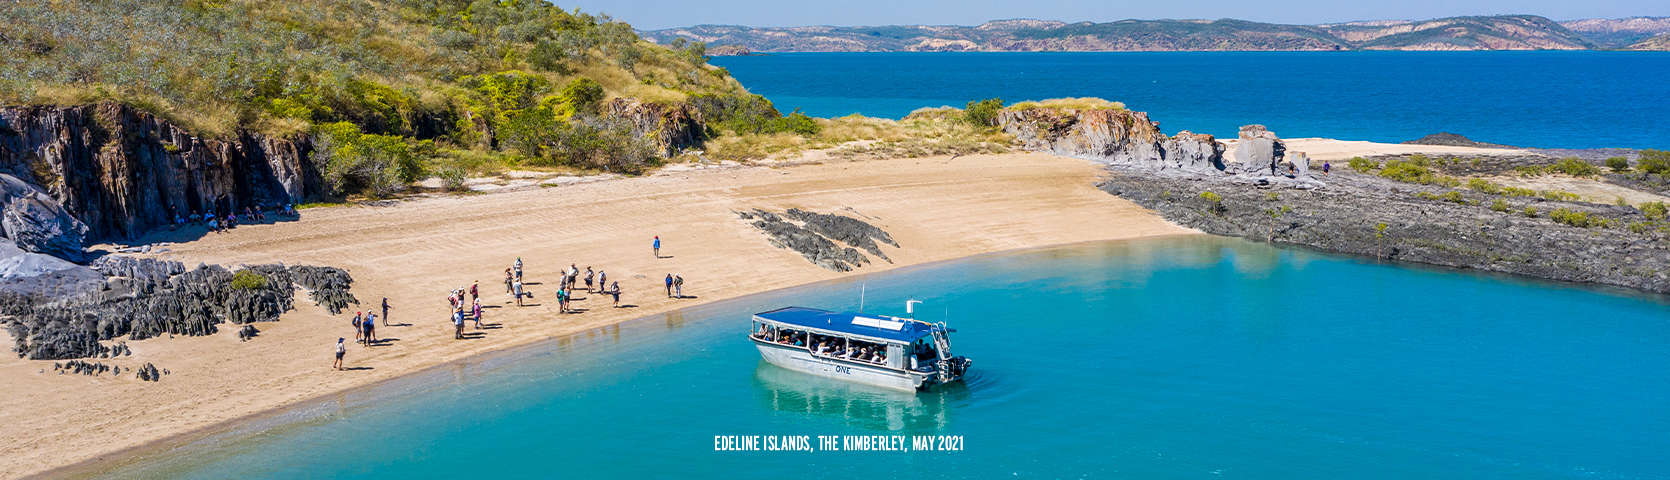 Edeline Islands Kimberley Cruise Coral Expeditions